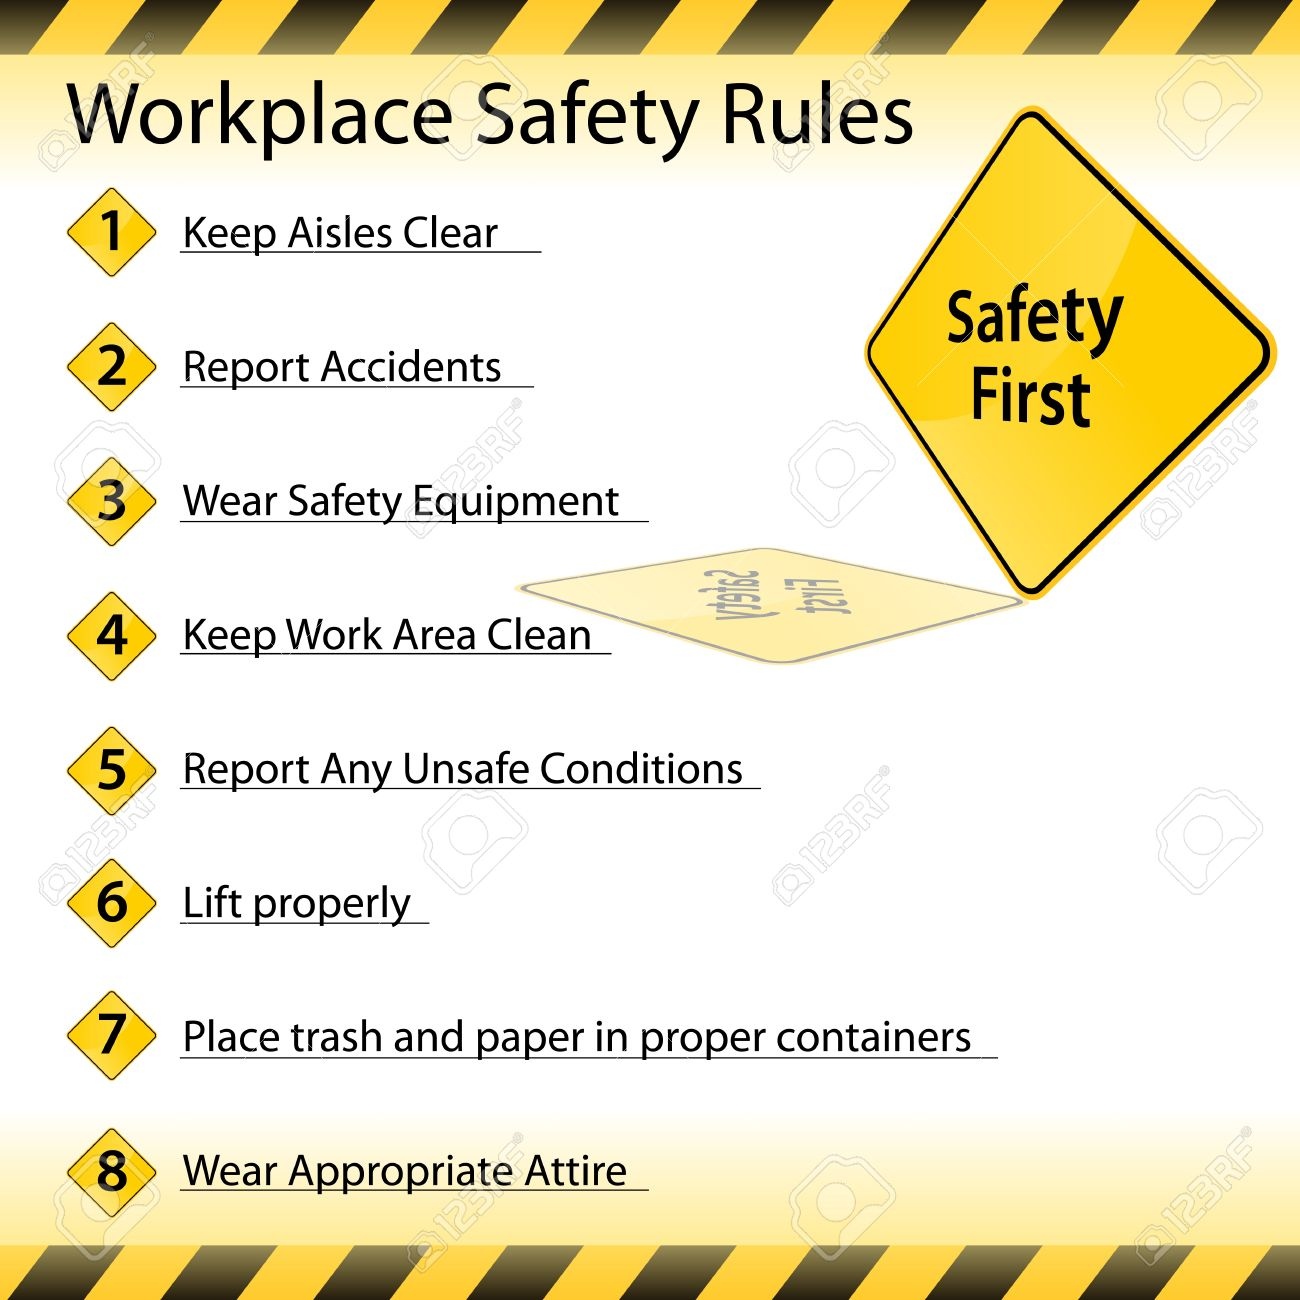 an image of a workplace safety rules chart royalty free cliparts